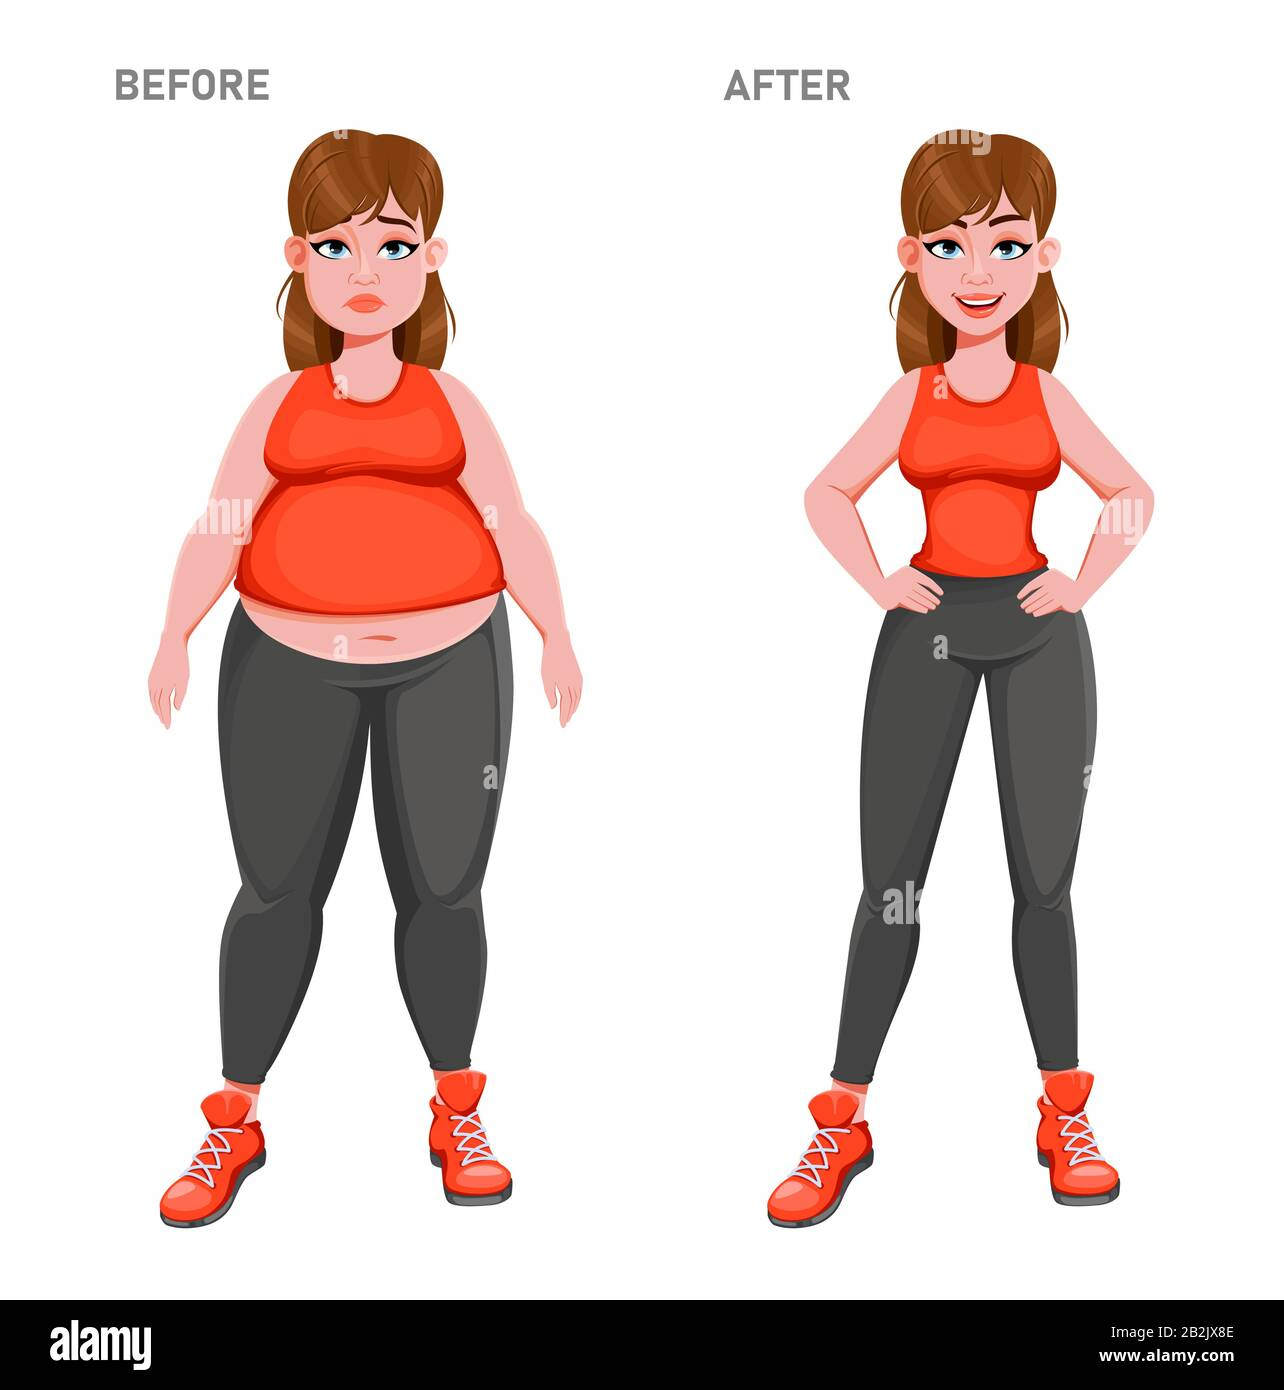 Nice Girl Before And After Weight Loss Overweight And Slim Woman Cartoon Character Stock Vector Stock Vector Image Art Alamy